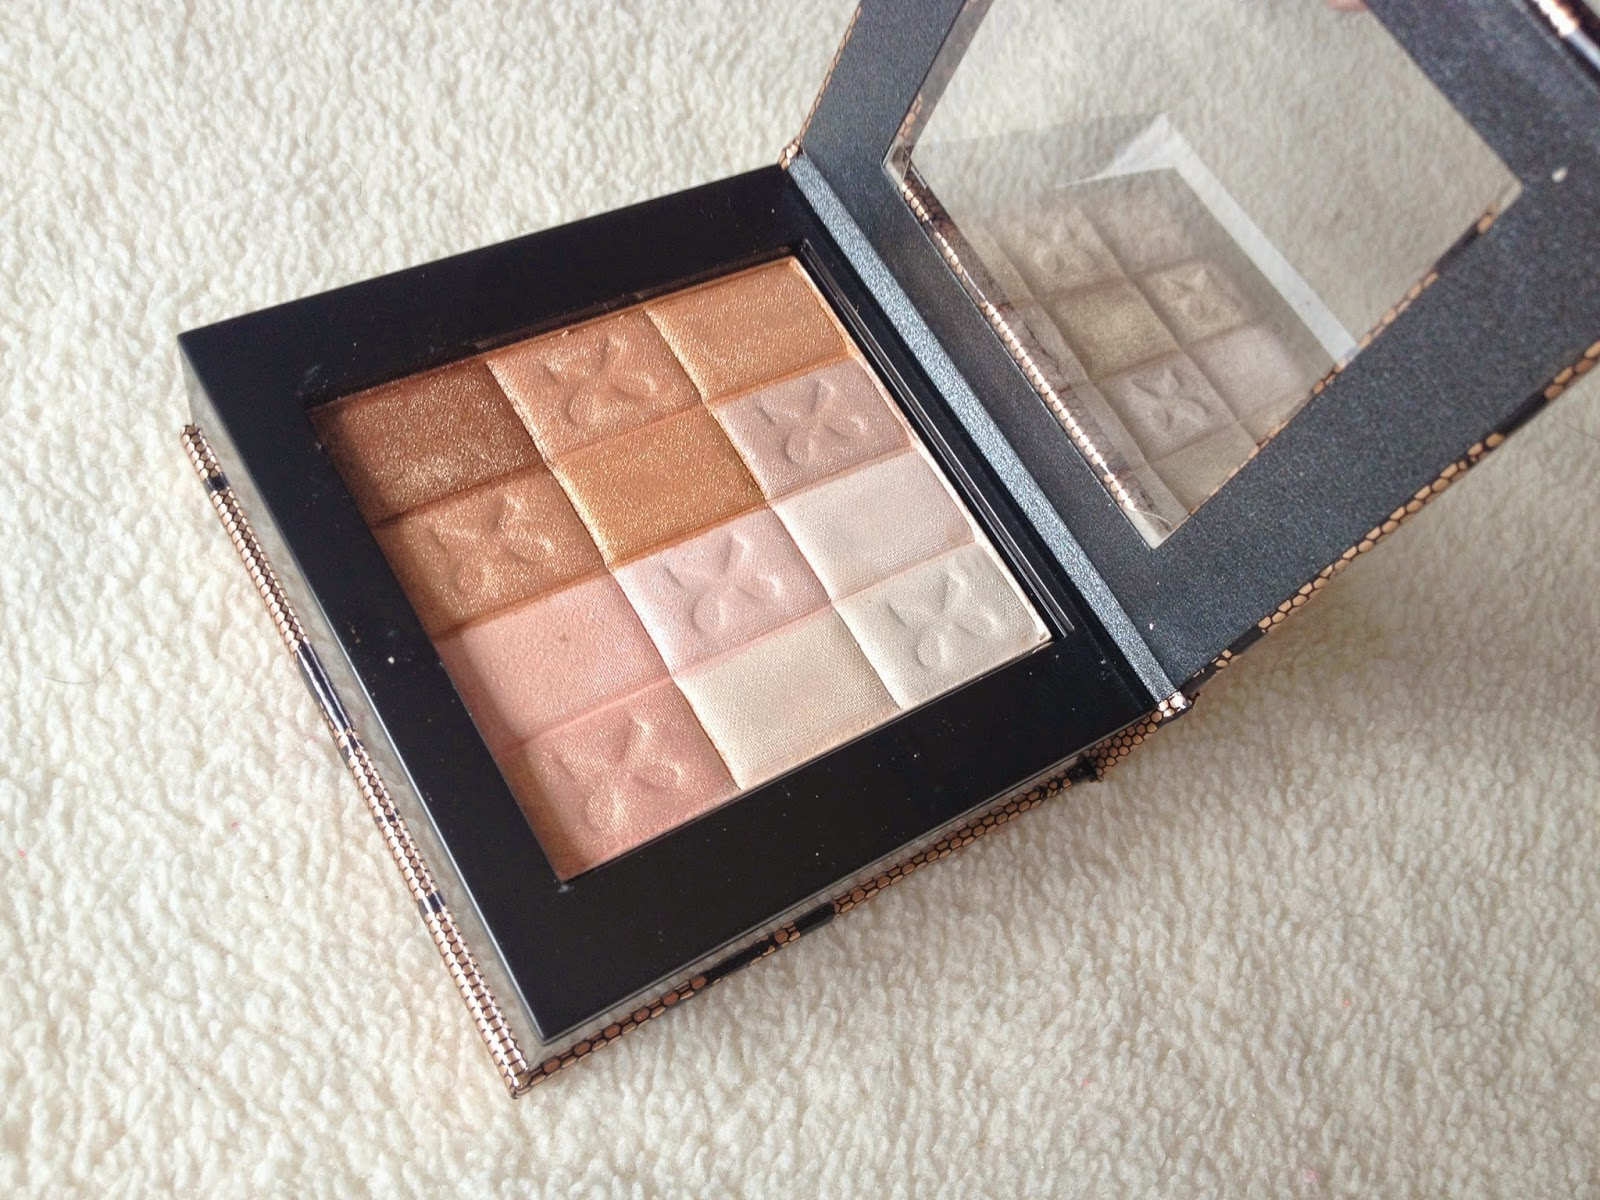 Physicians Formula Shimmer Strips All in 1 Custom Nude Palette